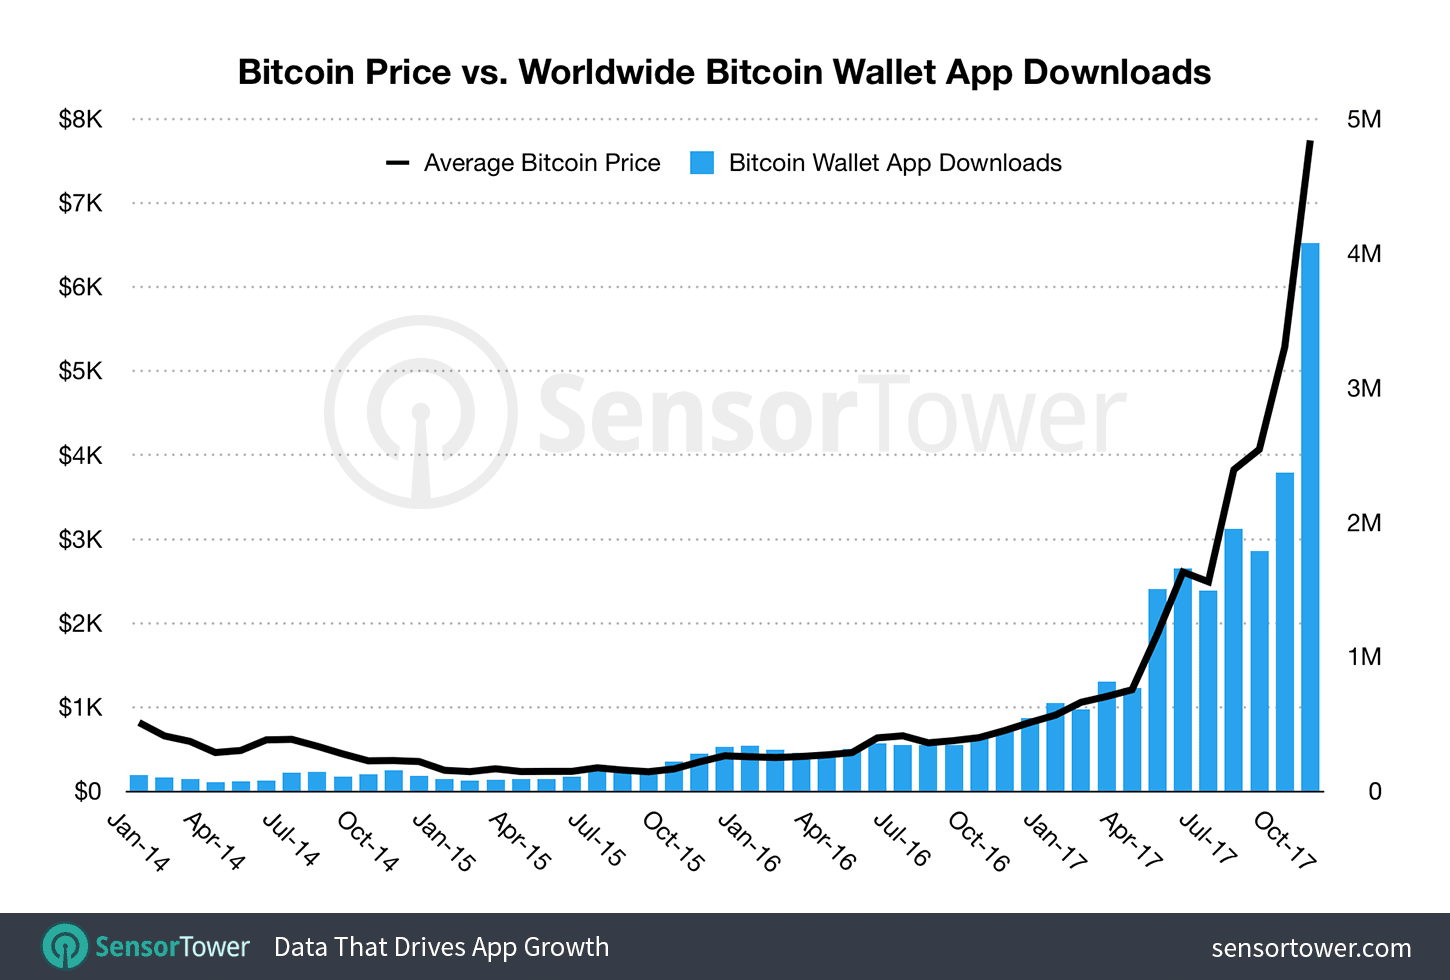 Worldwide growth of downloads of bitcoin wallet apps on the App Store and Google Play since January 2014 charted against daily bitcoin value in U.S. dollars